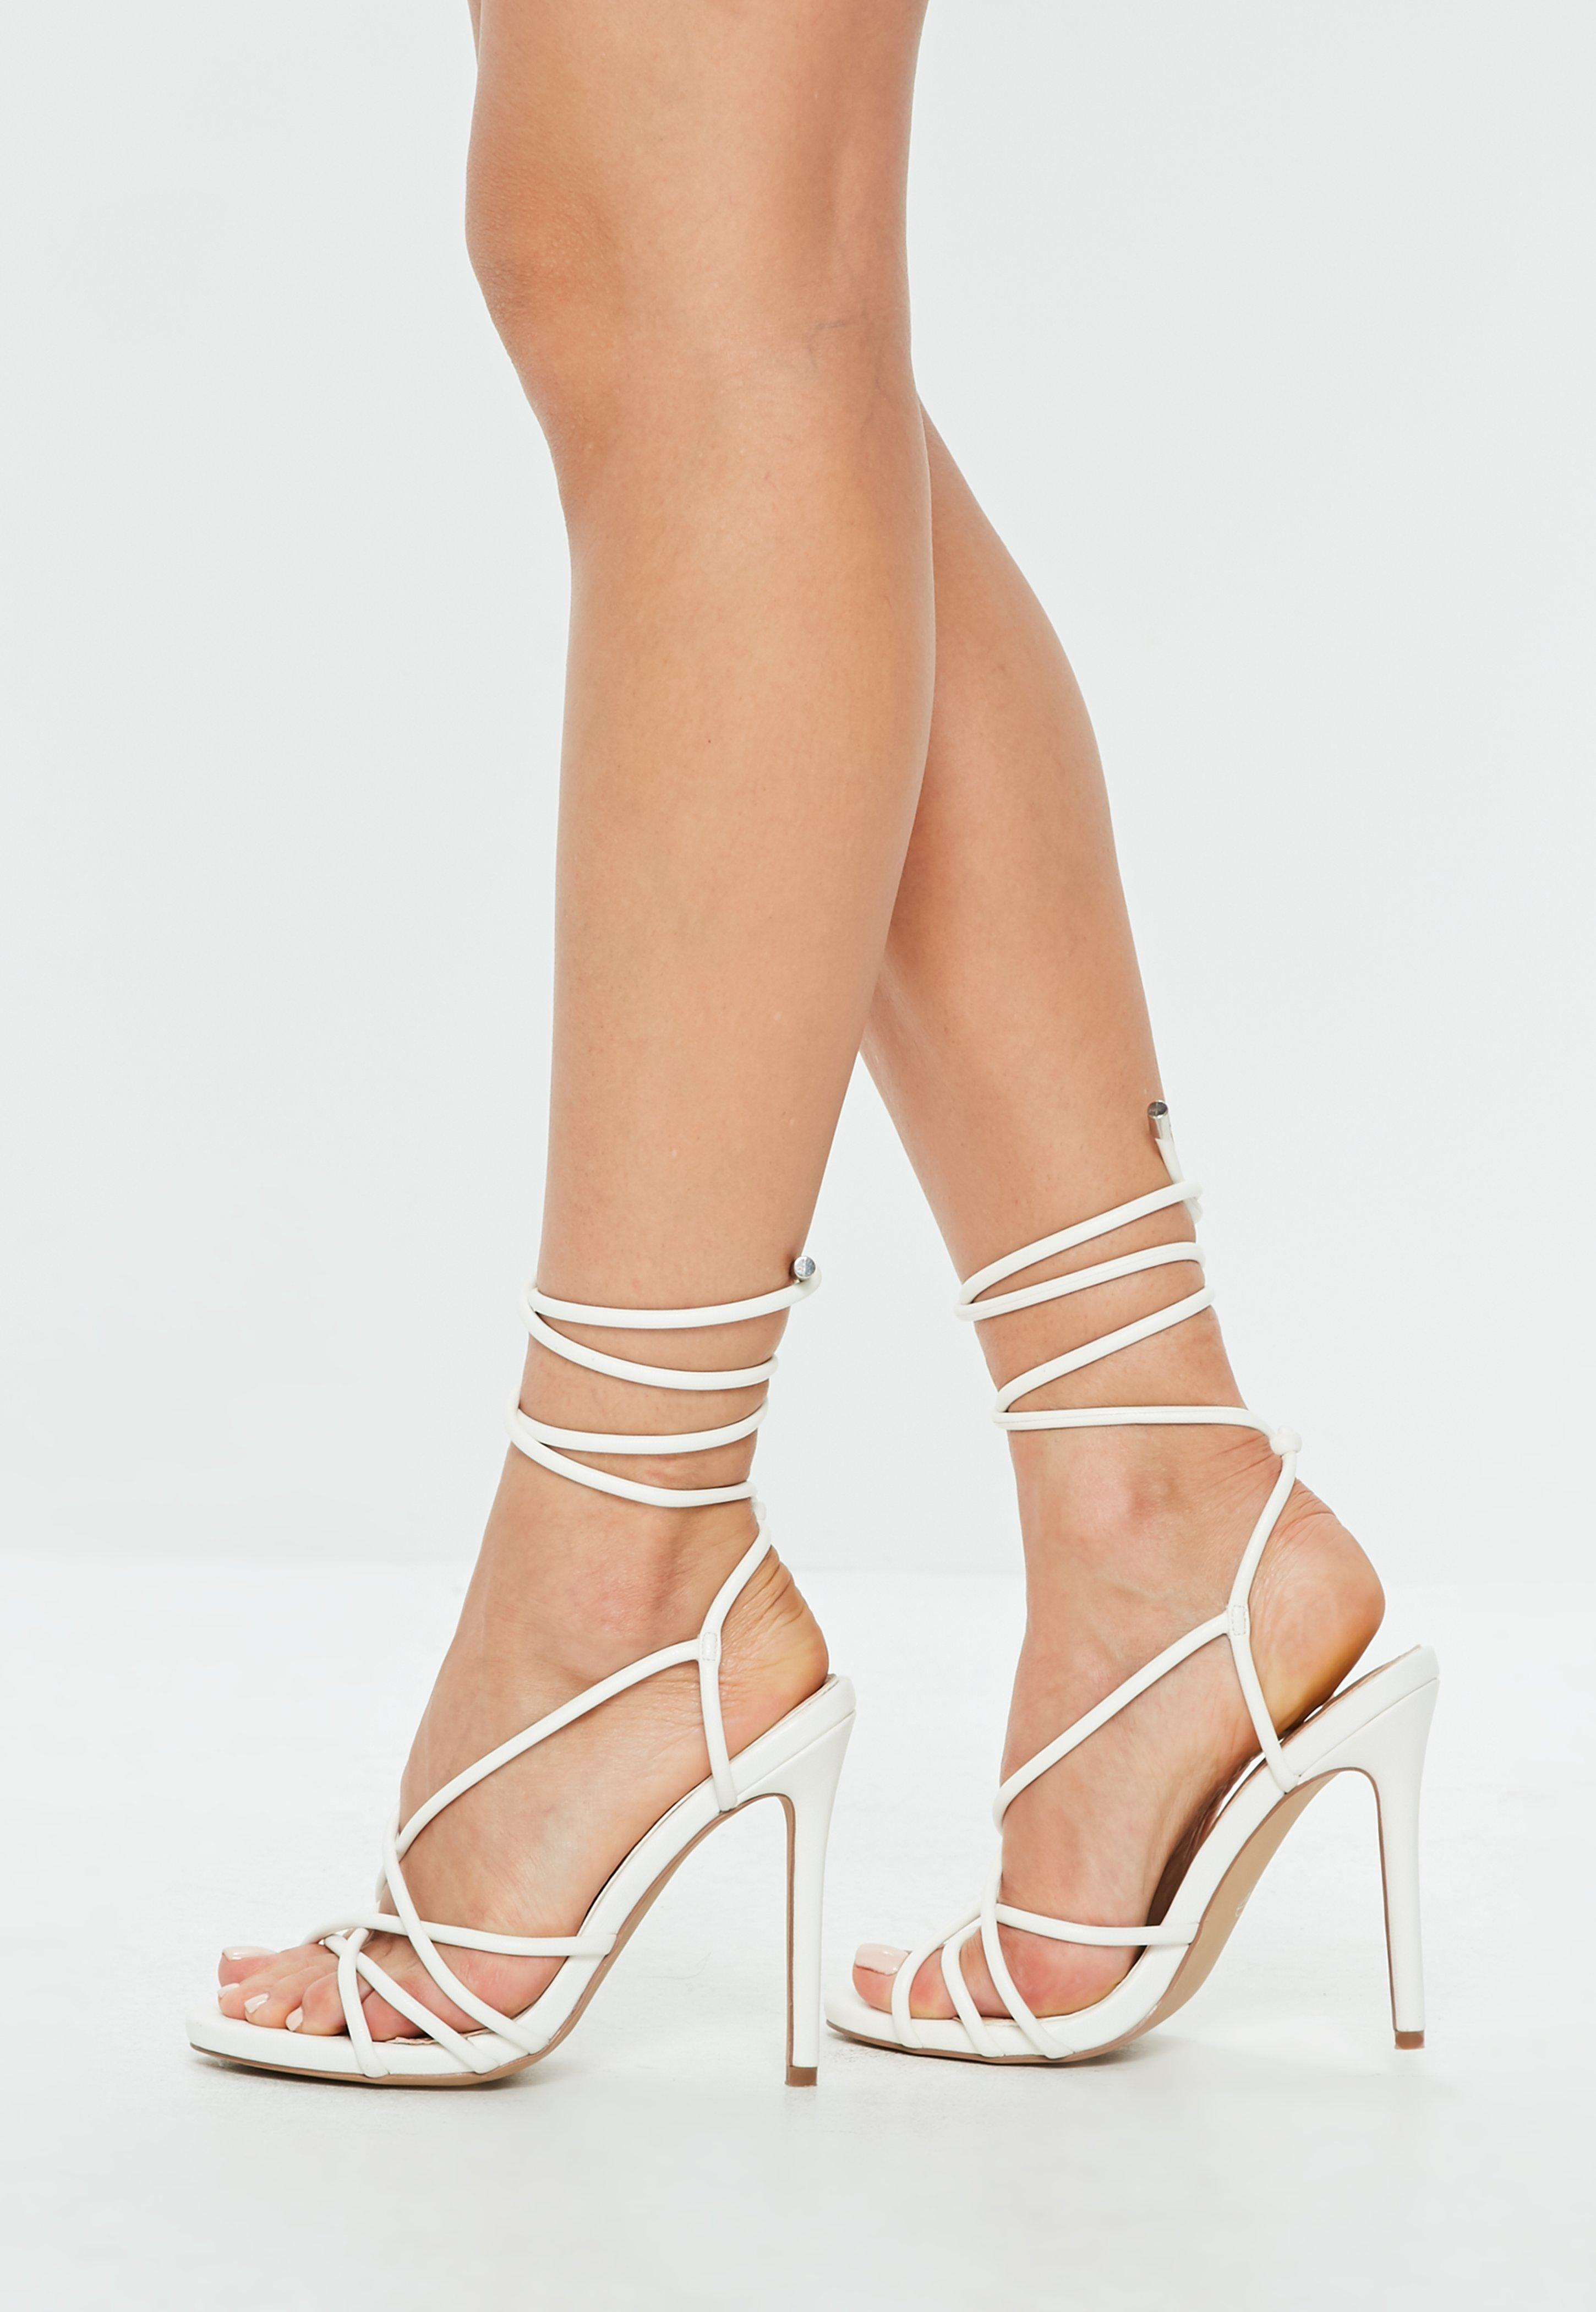 39e12a432b5d Lyst - Missguided White Faux Leather Tie Up Gladiator Sandals in White